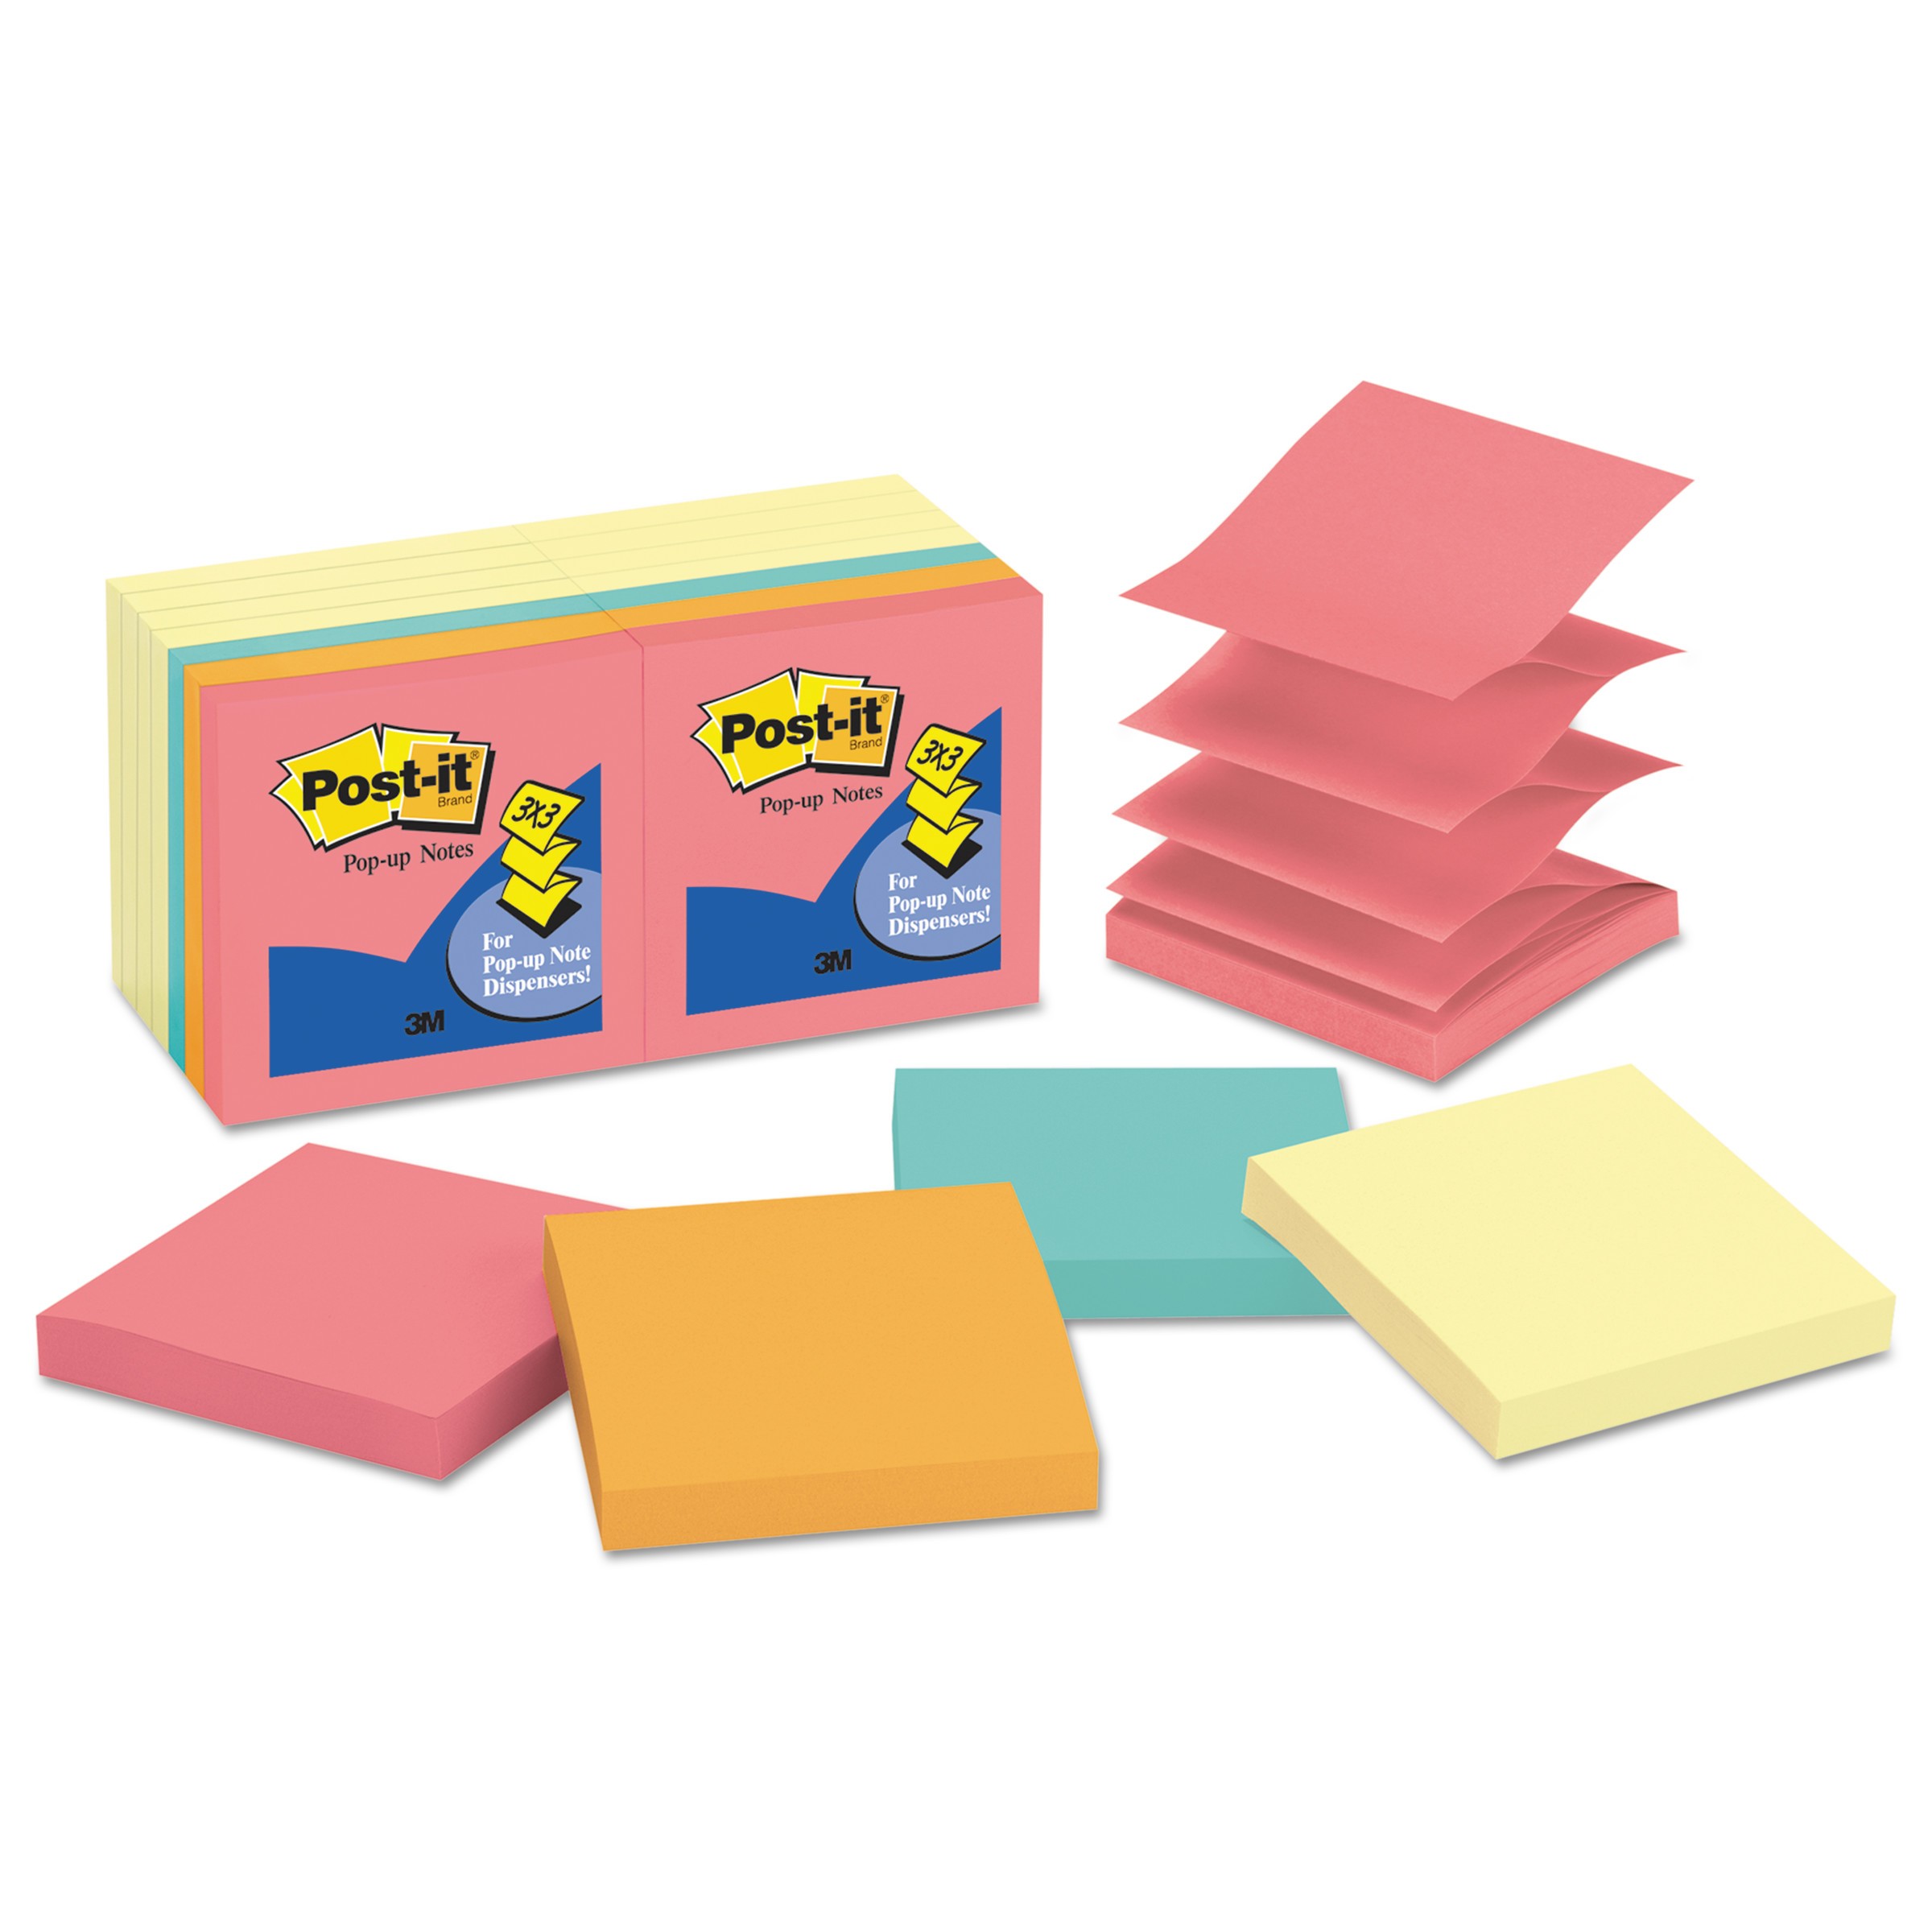 Post-it Pop-up Notes Original Pop-up Notes Value Pack, 3 x 3, Canary Yellow/Cape Town, 100-Sheet -MMMR33014YWM